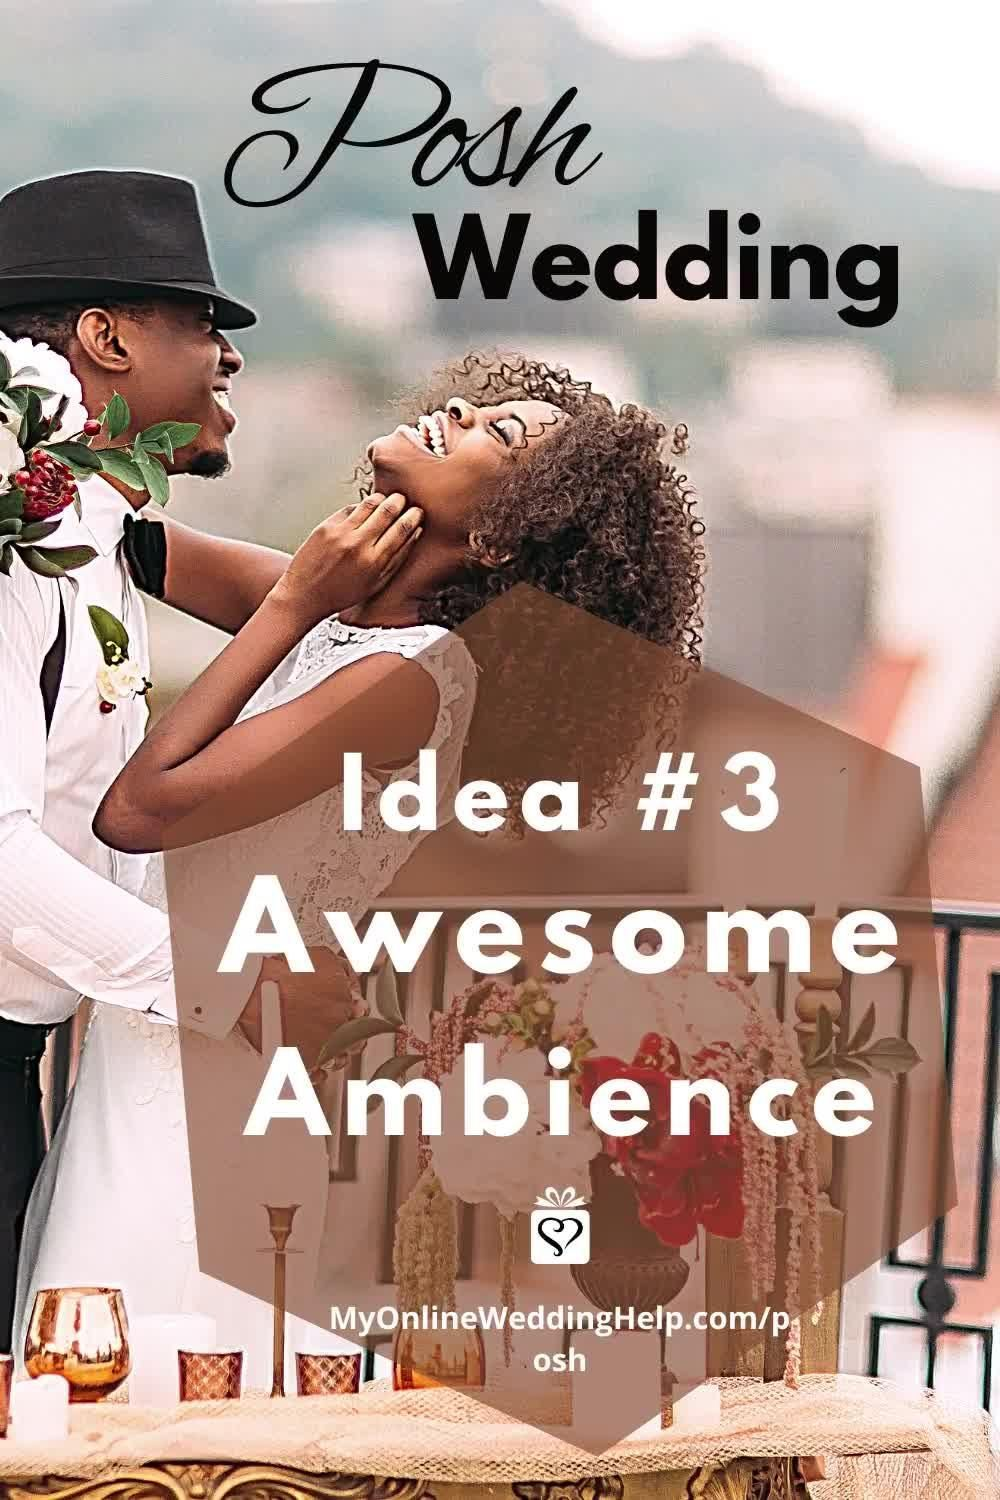 Some Different Ideas For Making Your Budget Wedding Look Posh Tips For Making Your Wedding Look More Upscale In 2020 Budget Wedding Average Wedding Costs Posh Wedding